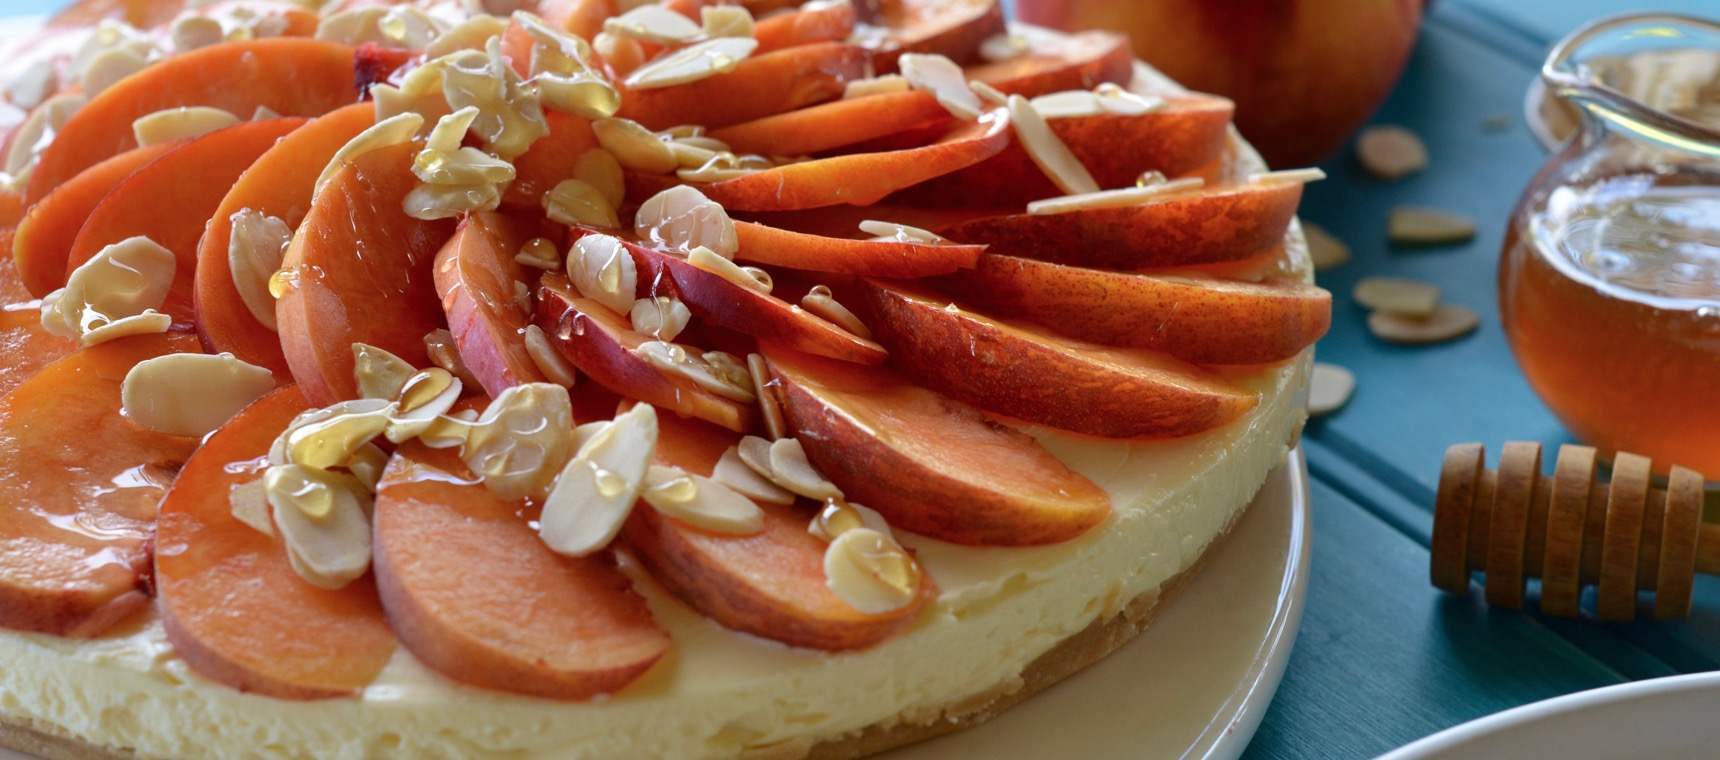 Nectarine, Almond and Honey Cheesecake